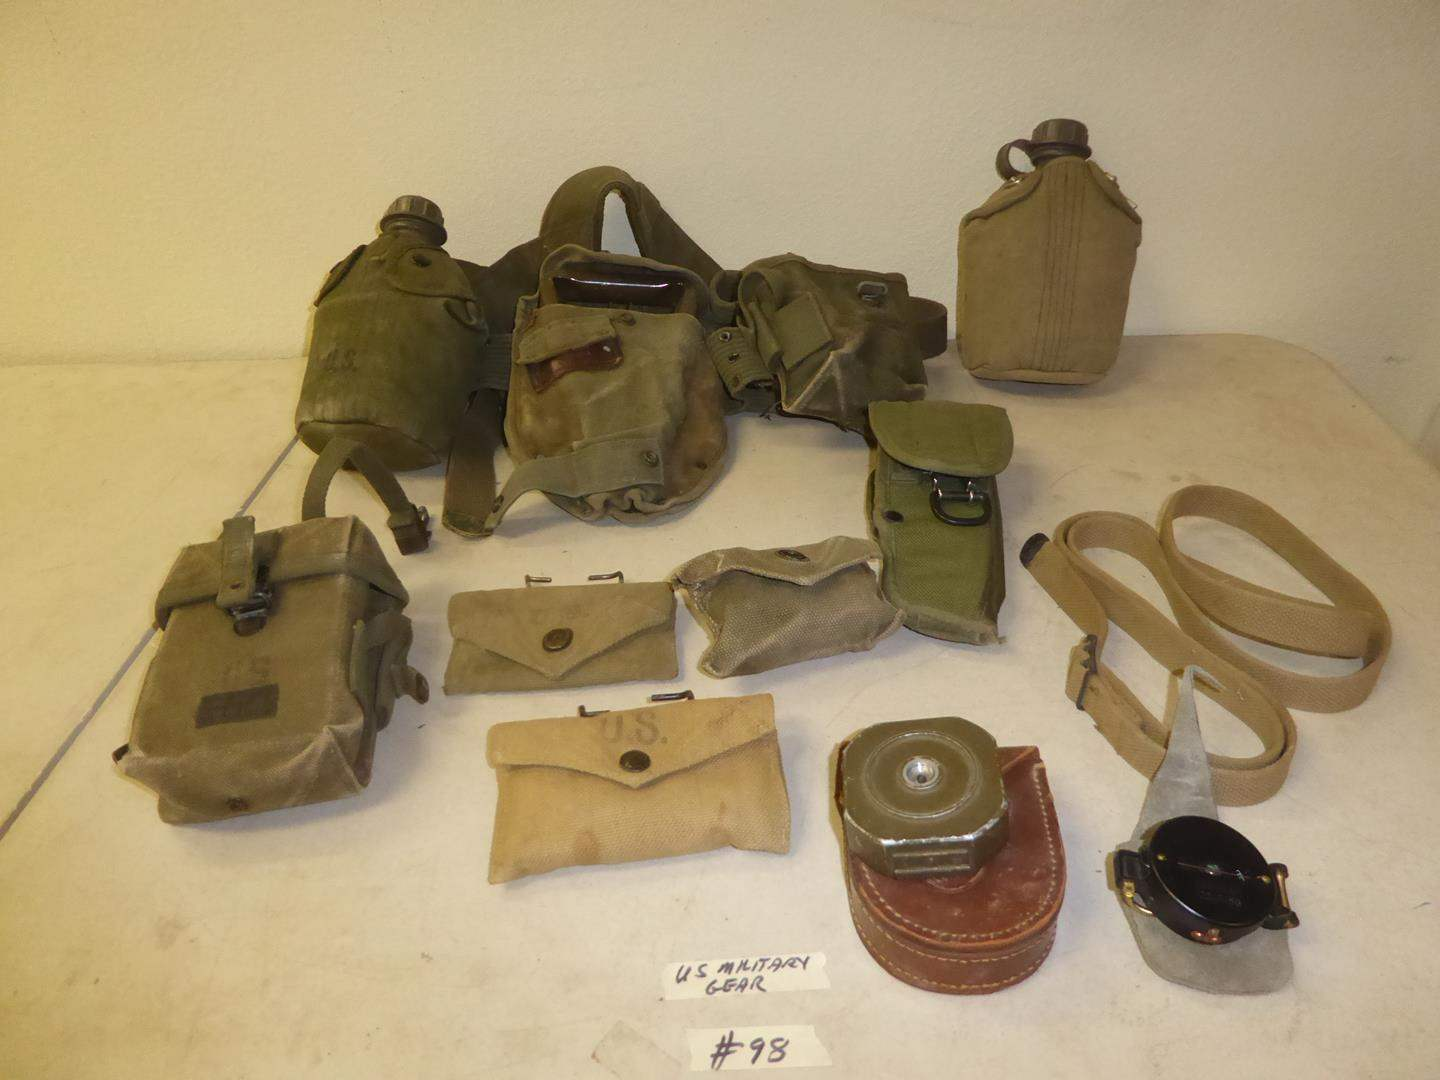 Lot # 98 - Vintage U.S. Military Gear (main image)